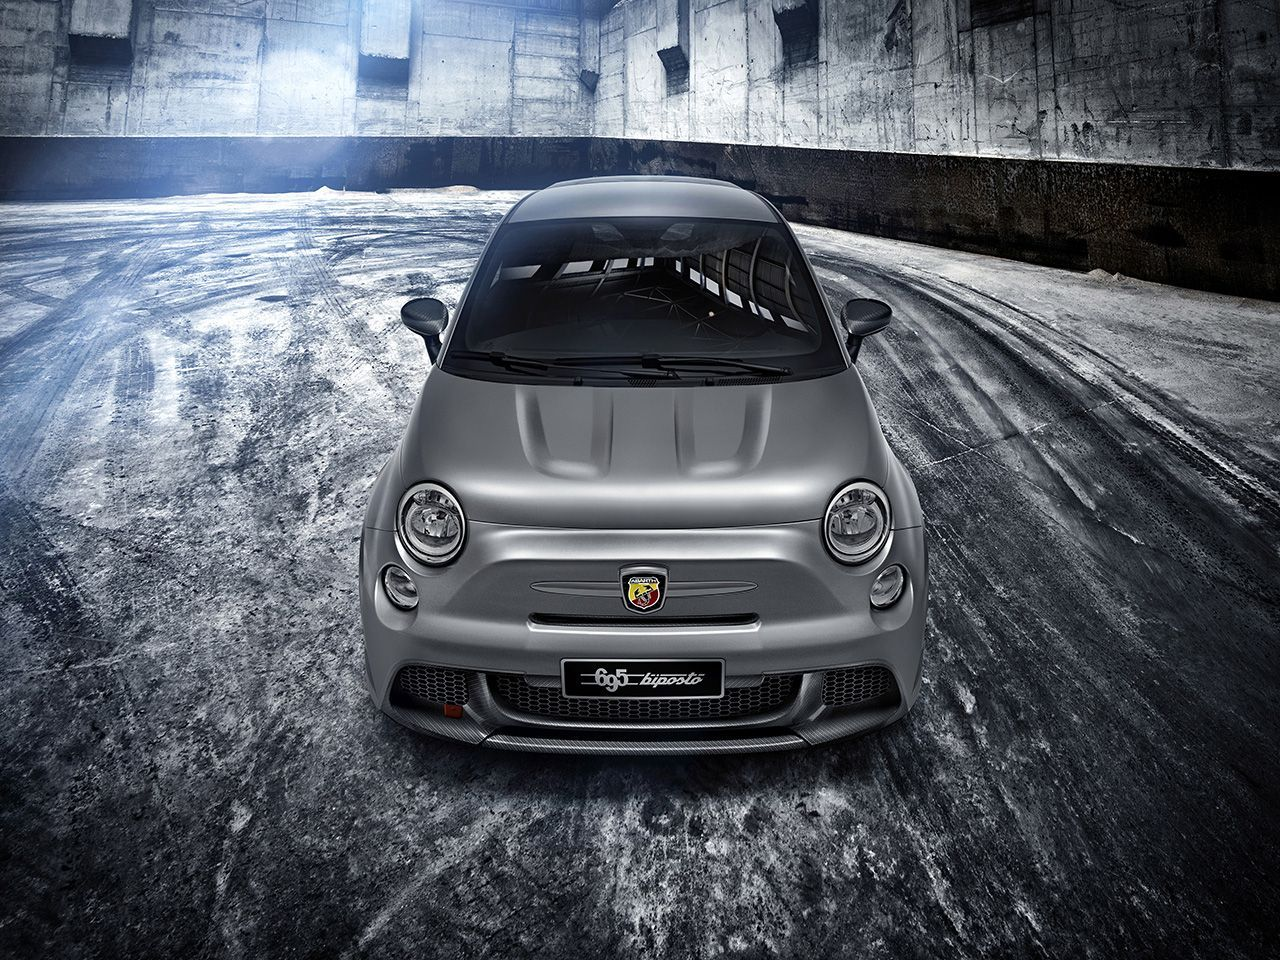 ABARTH 695 BIPOSTO LAUNCHED AT GENEVA MOTOR SHOW - The fastest Abarth ever.